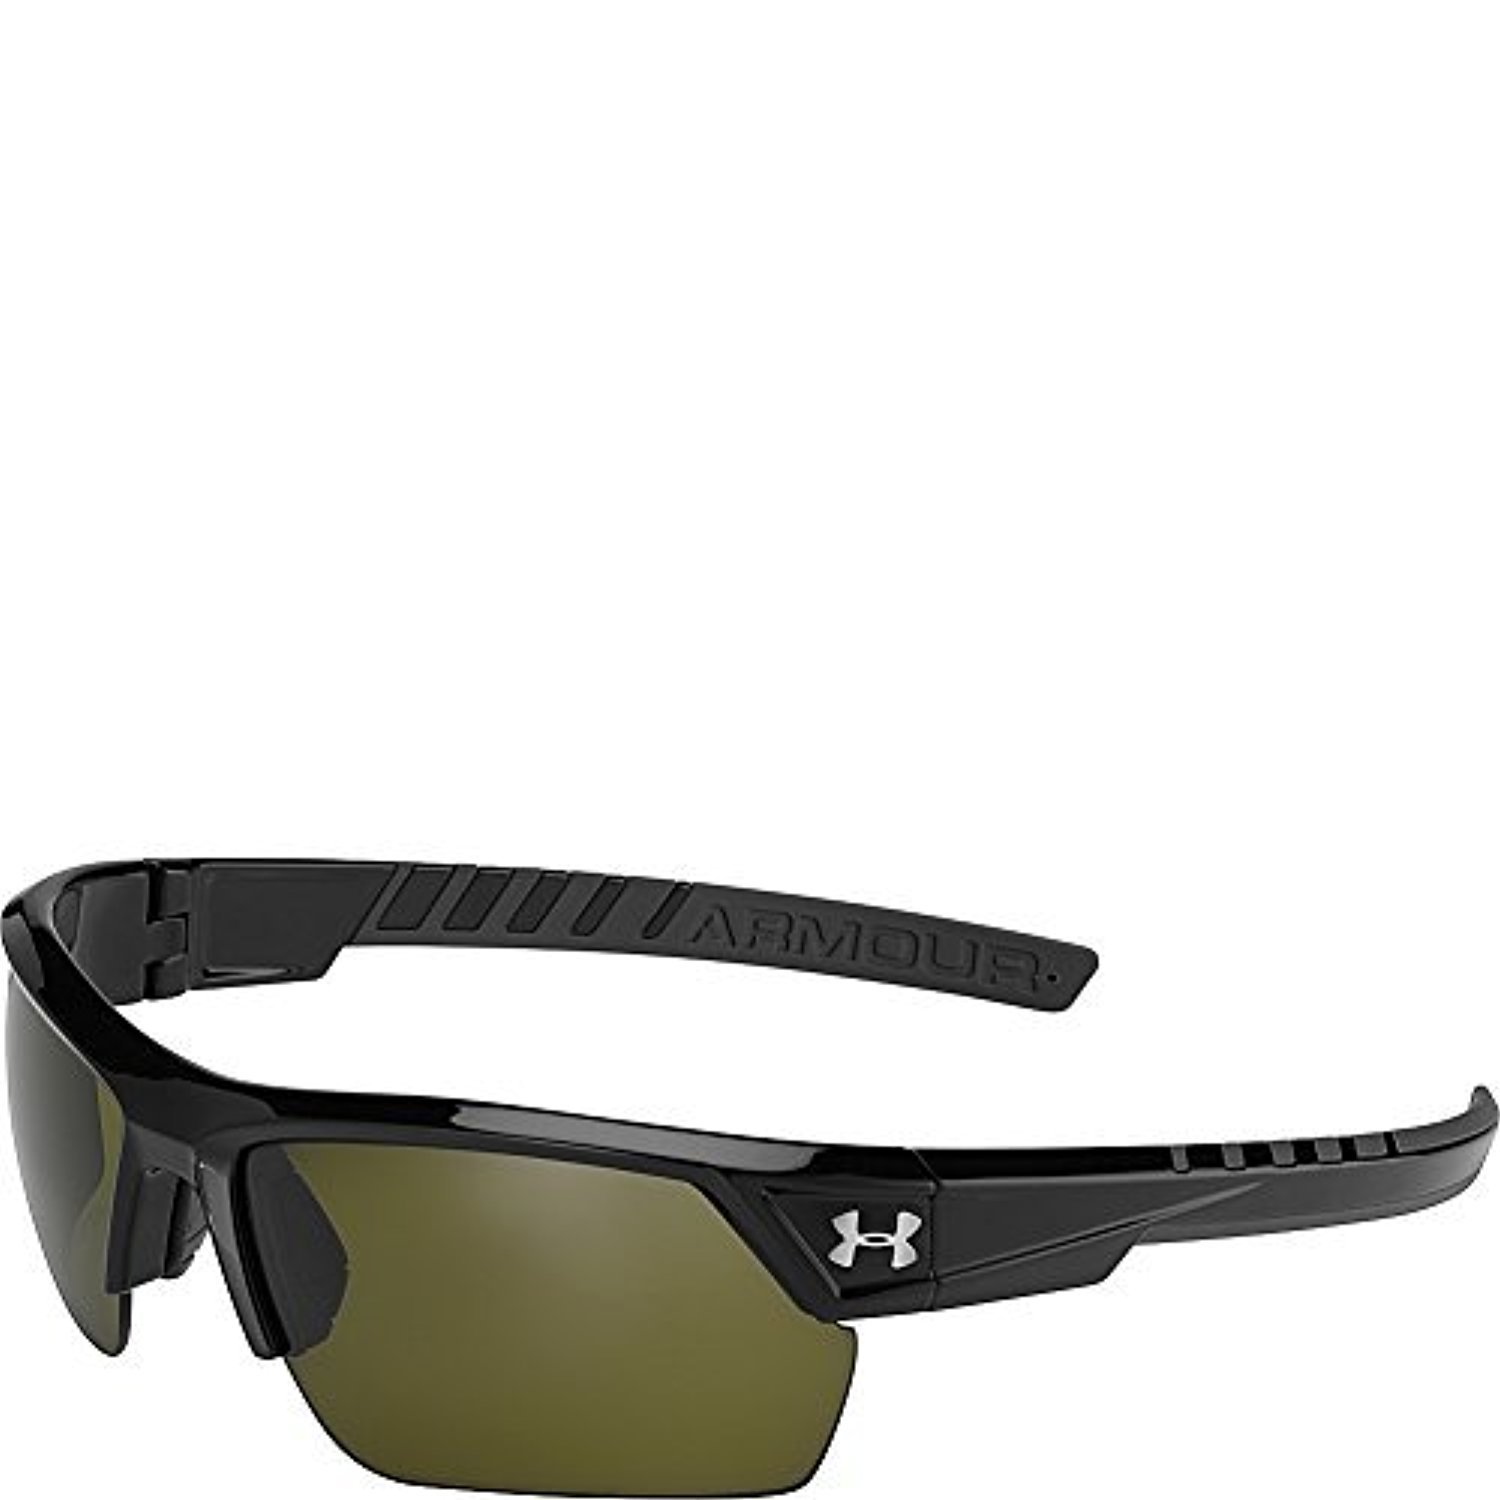 5d0ffdf5d559 Top3: Under Armour Igniter 2.0 Sunglasses & Cleaning Kit Bundle